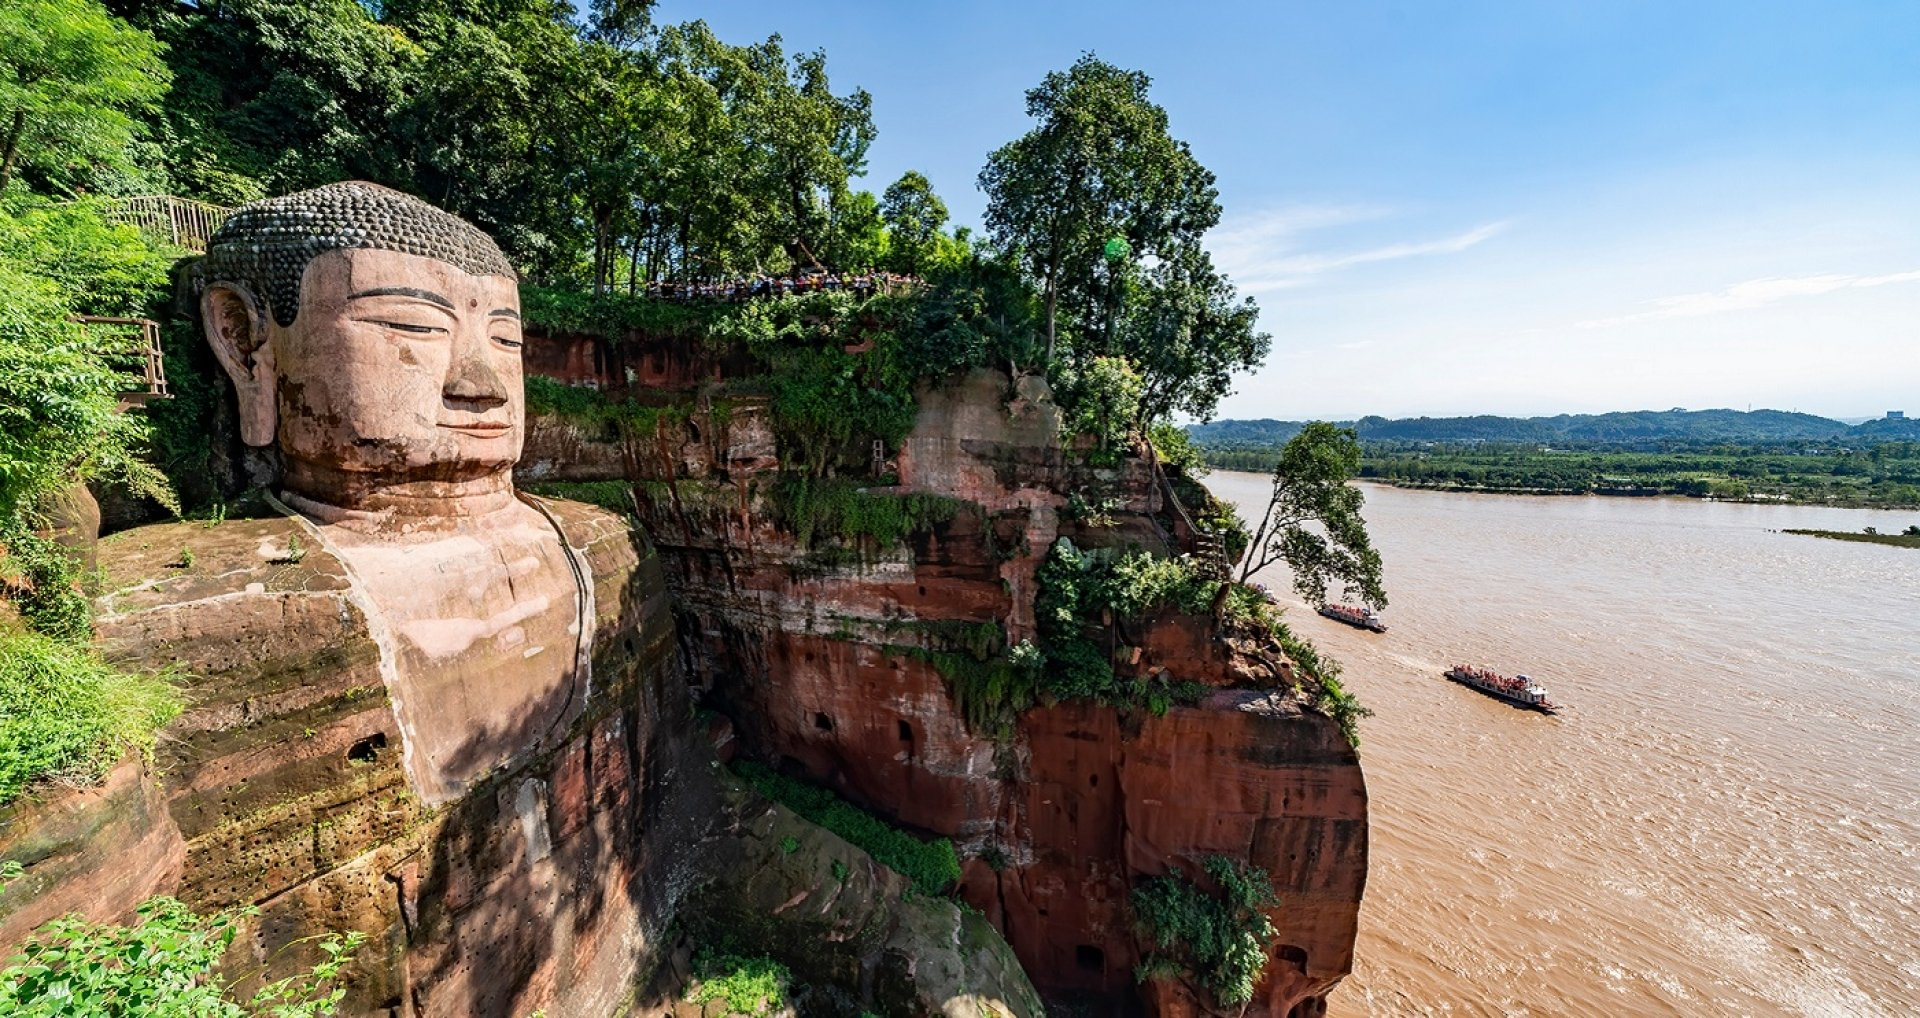 The Giant Leshan Buddha of China